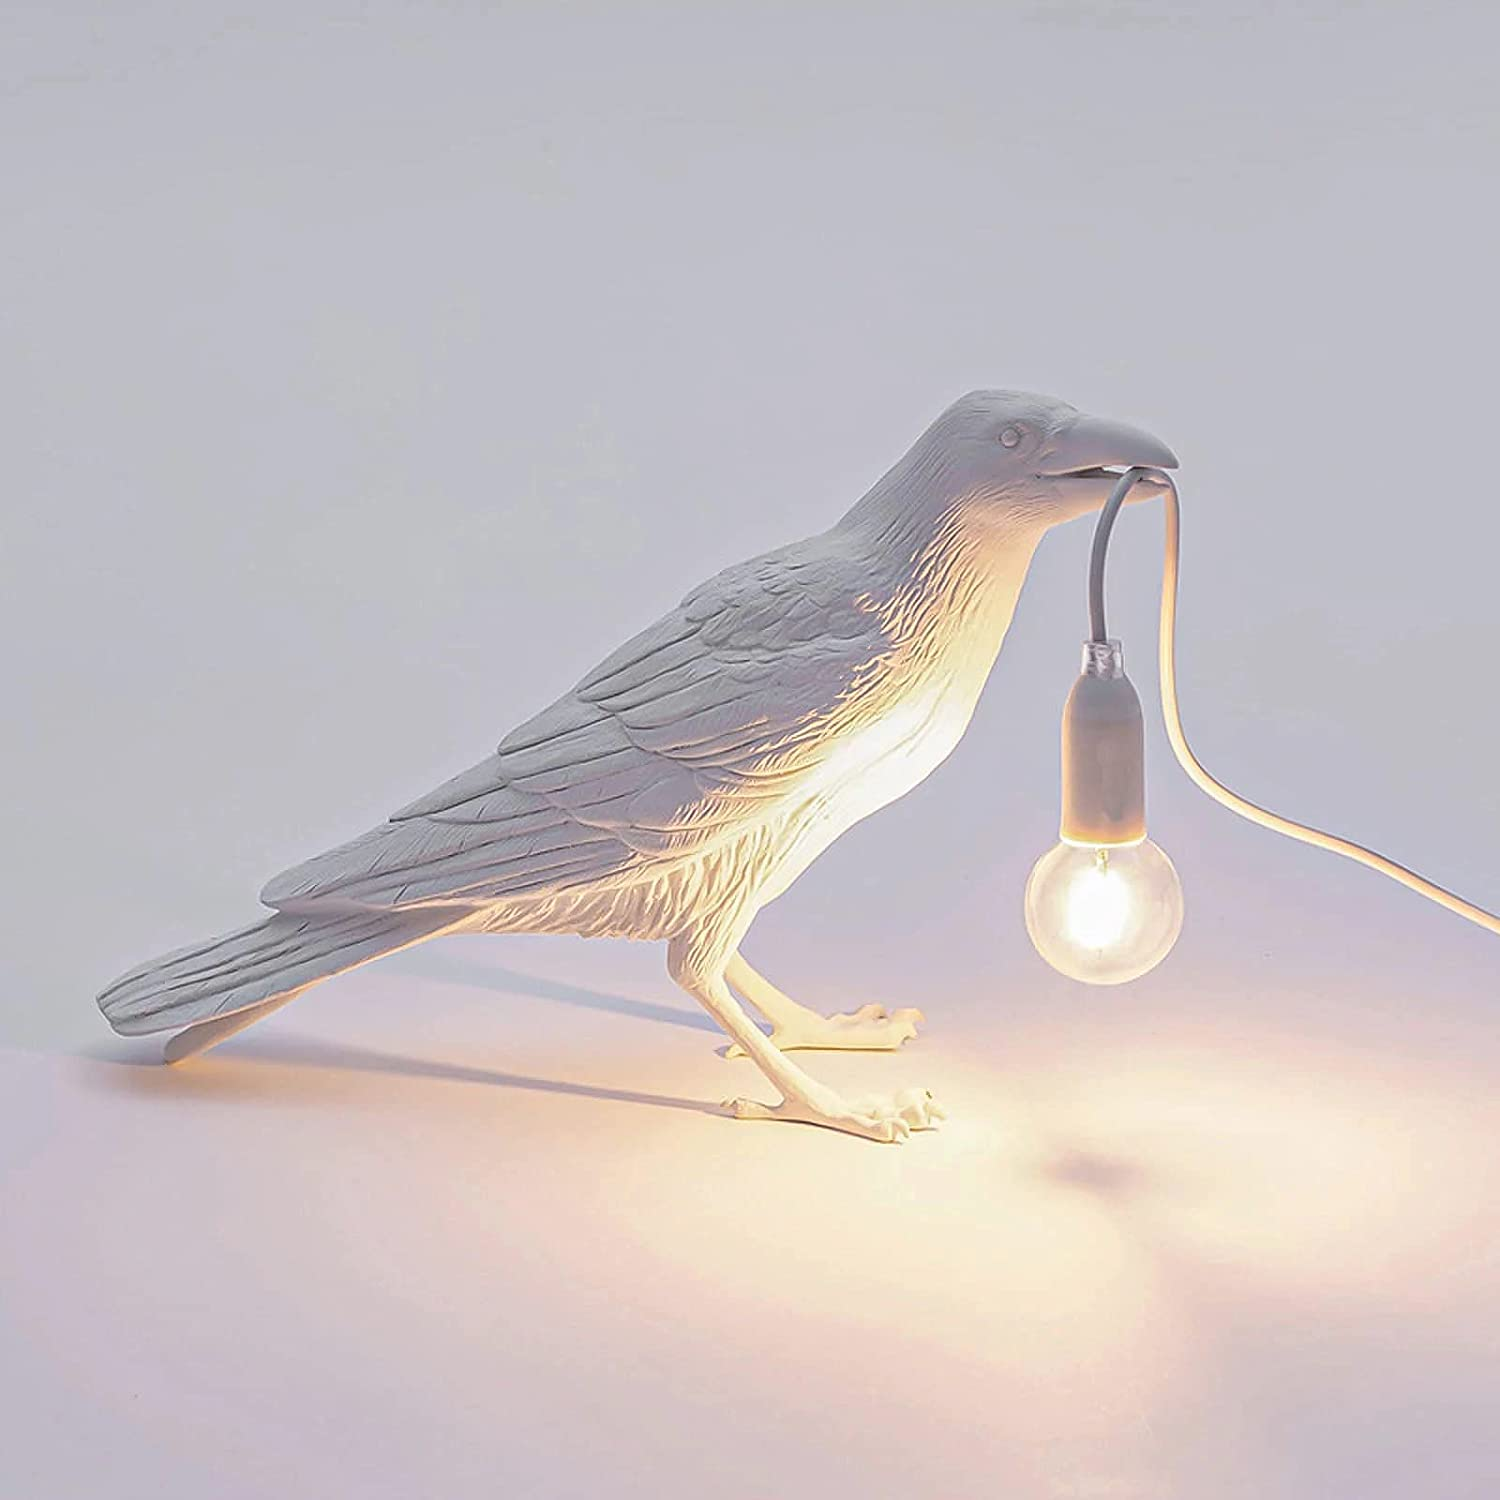 Raven Table Lamp New arrival Birds Desk Resin Crow Wall Creative Ranking TOP10 Sconce